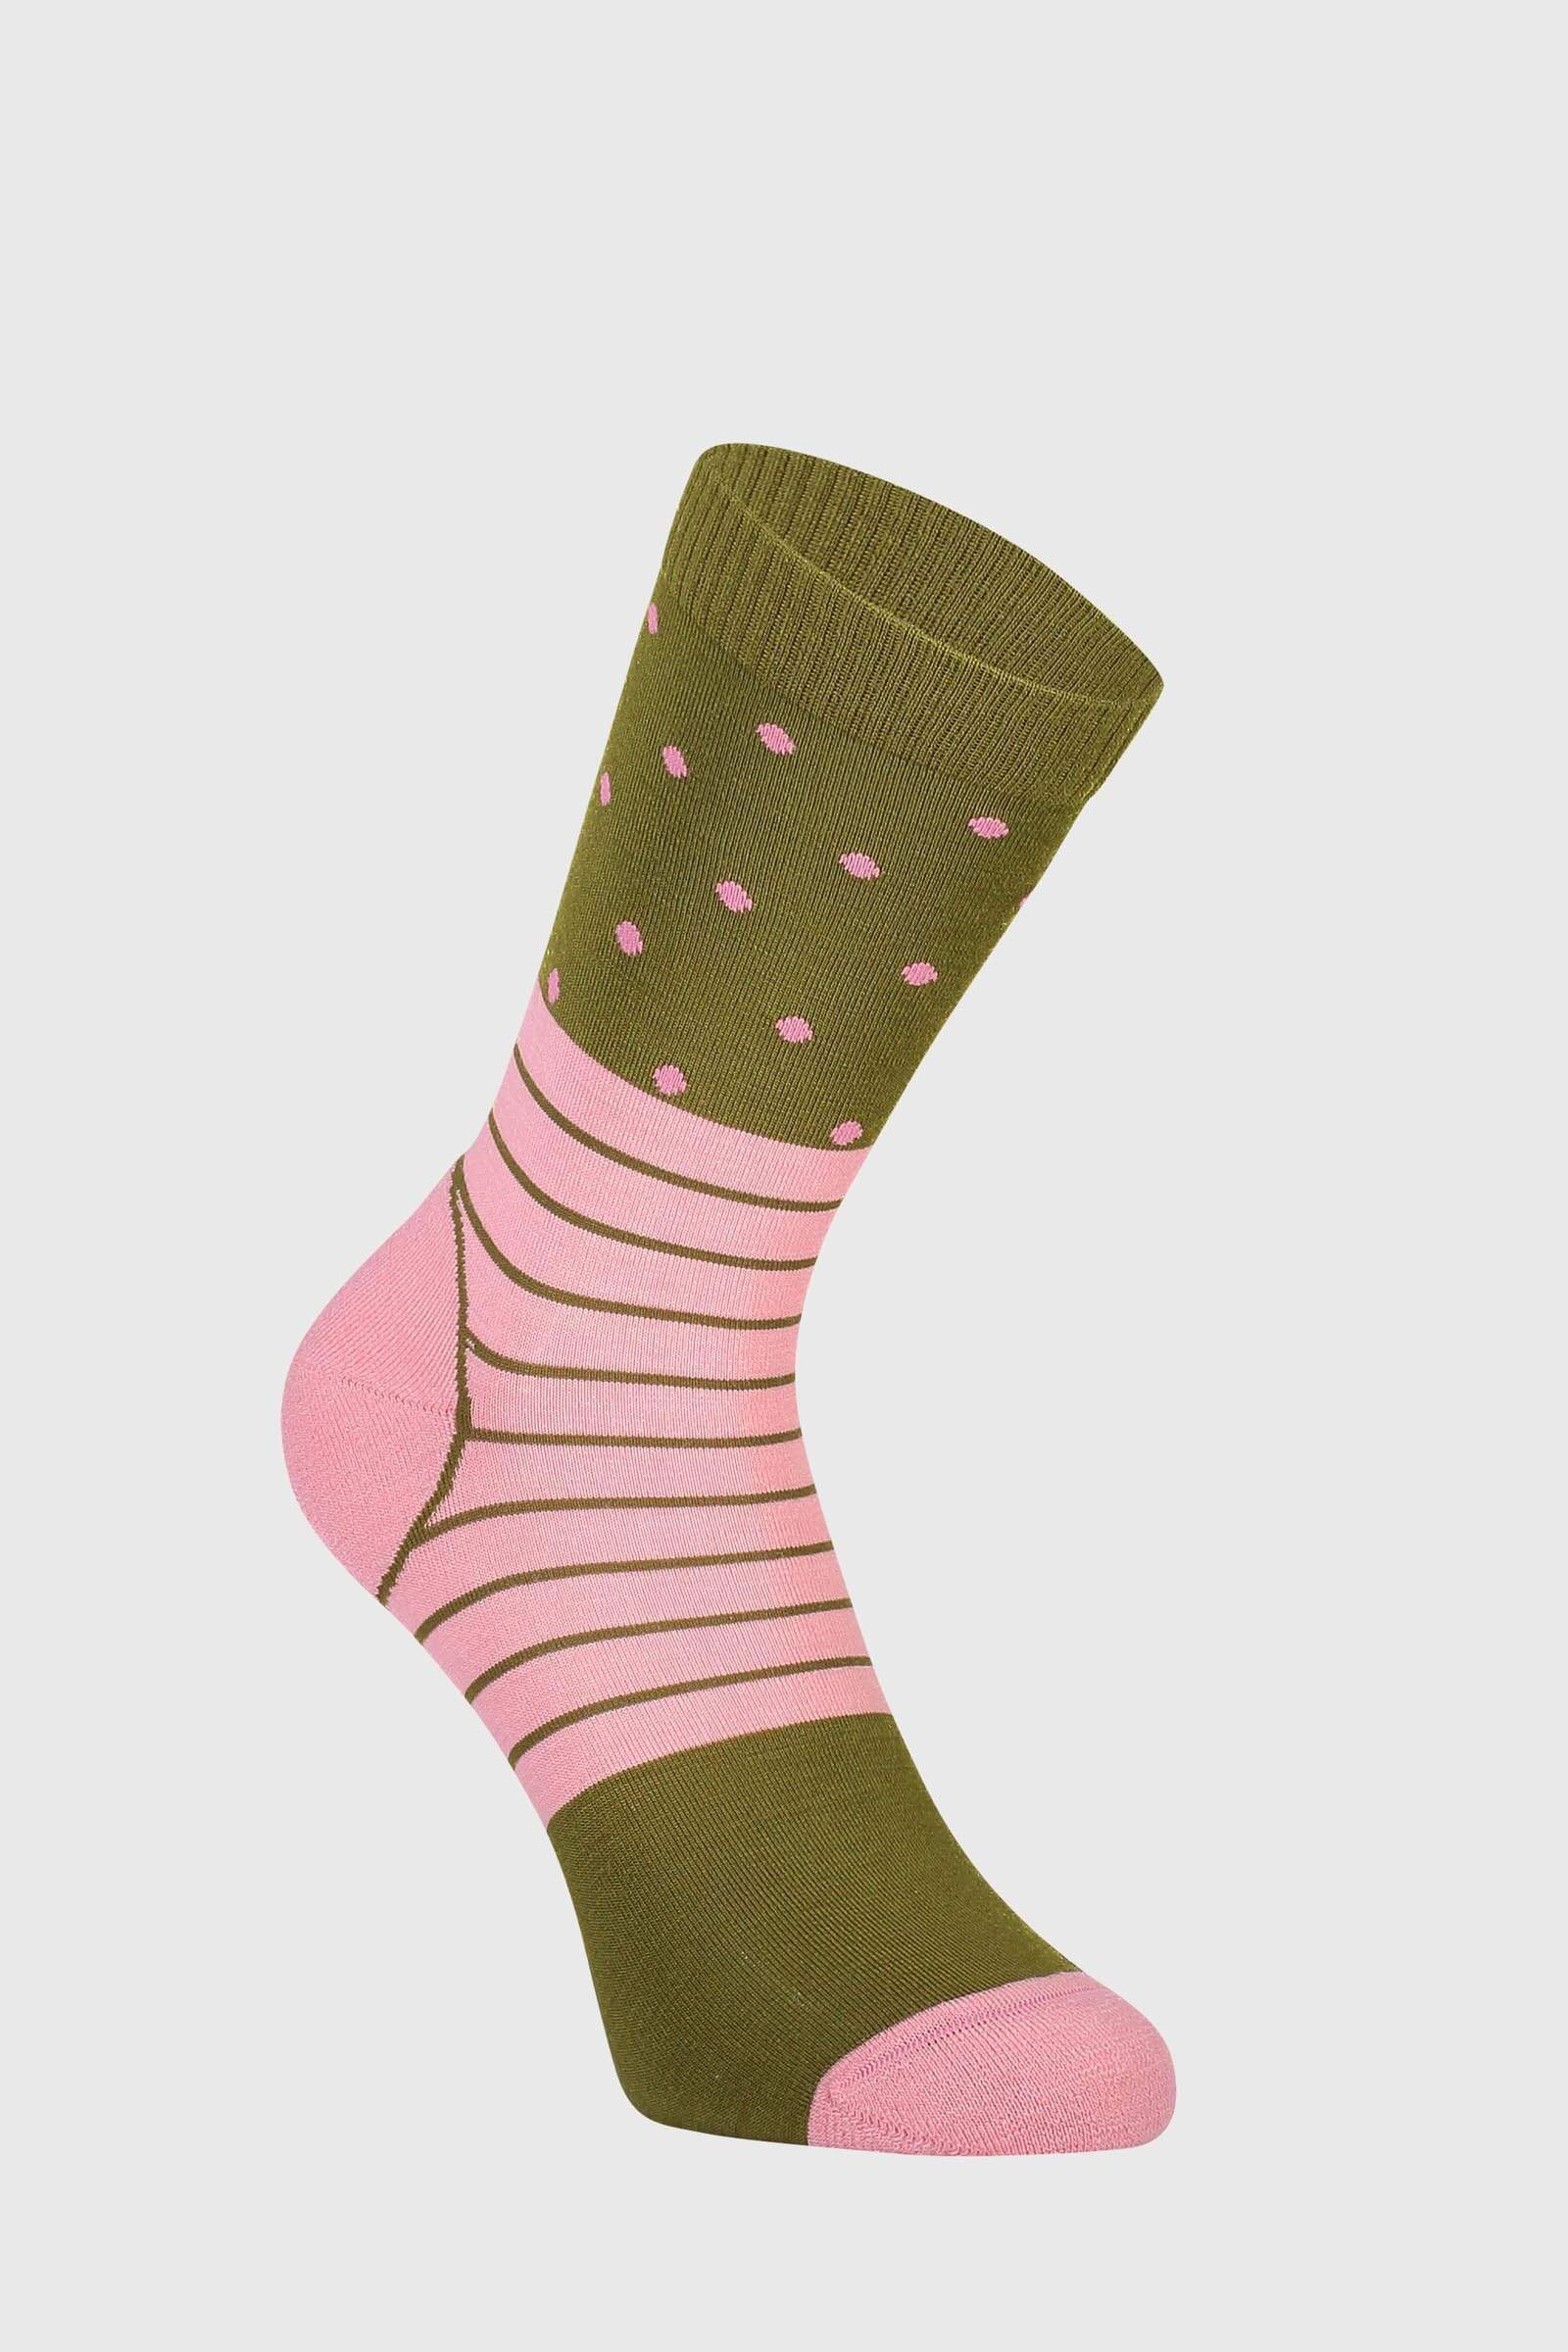 All Rounder Crew Sock Womens - Khaki Rose